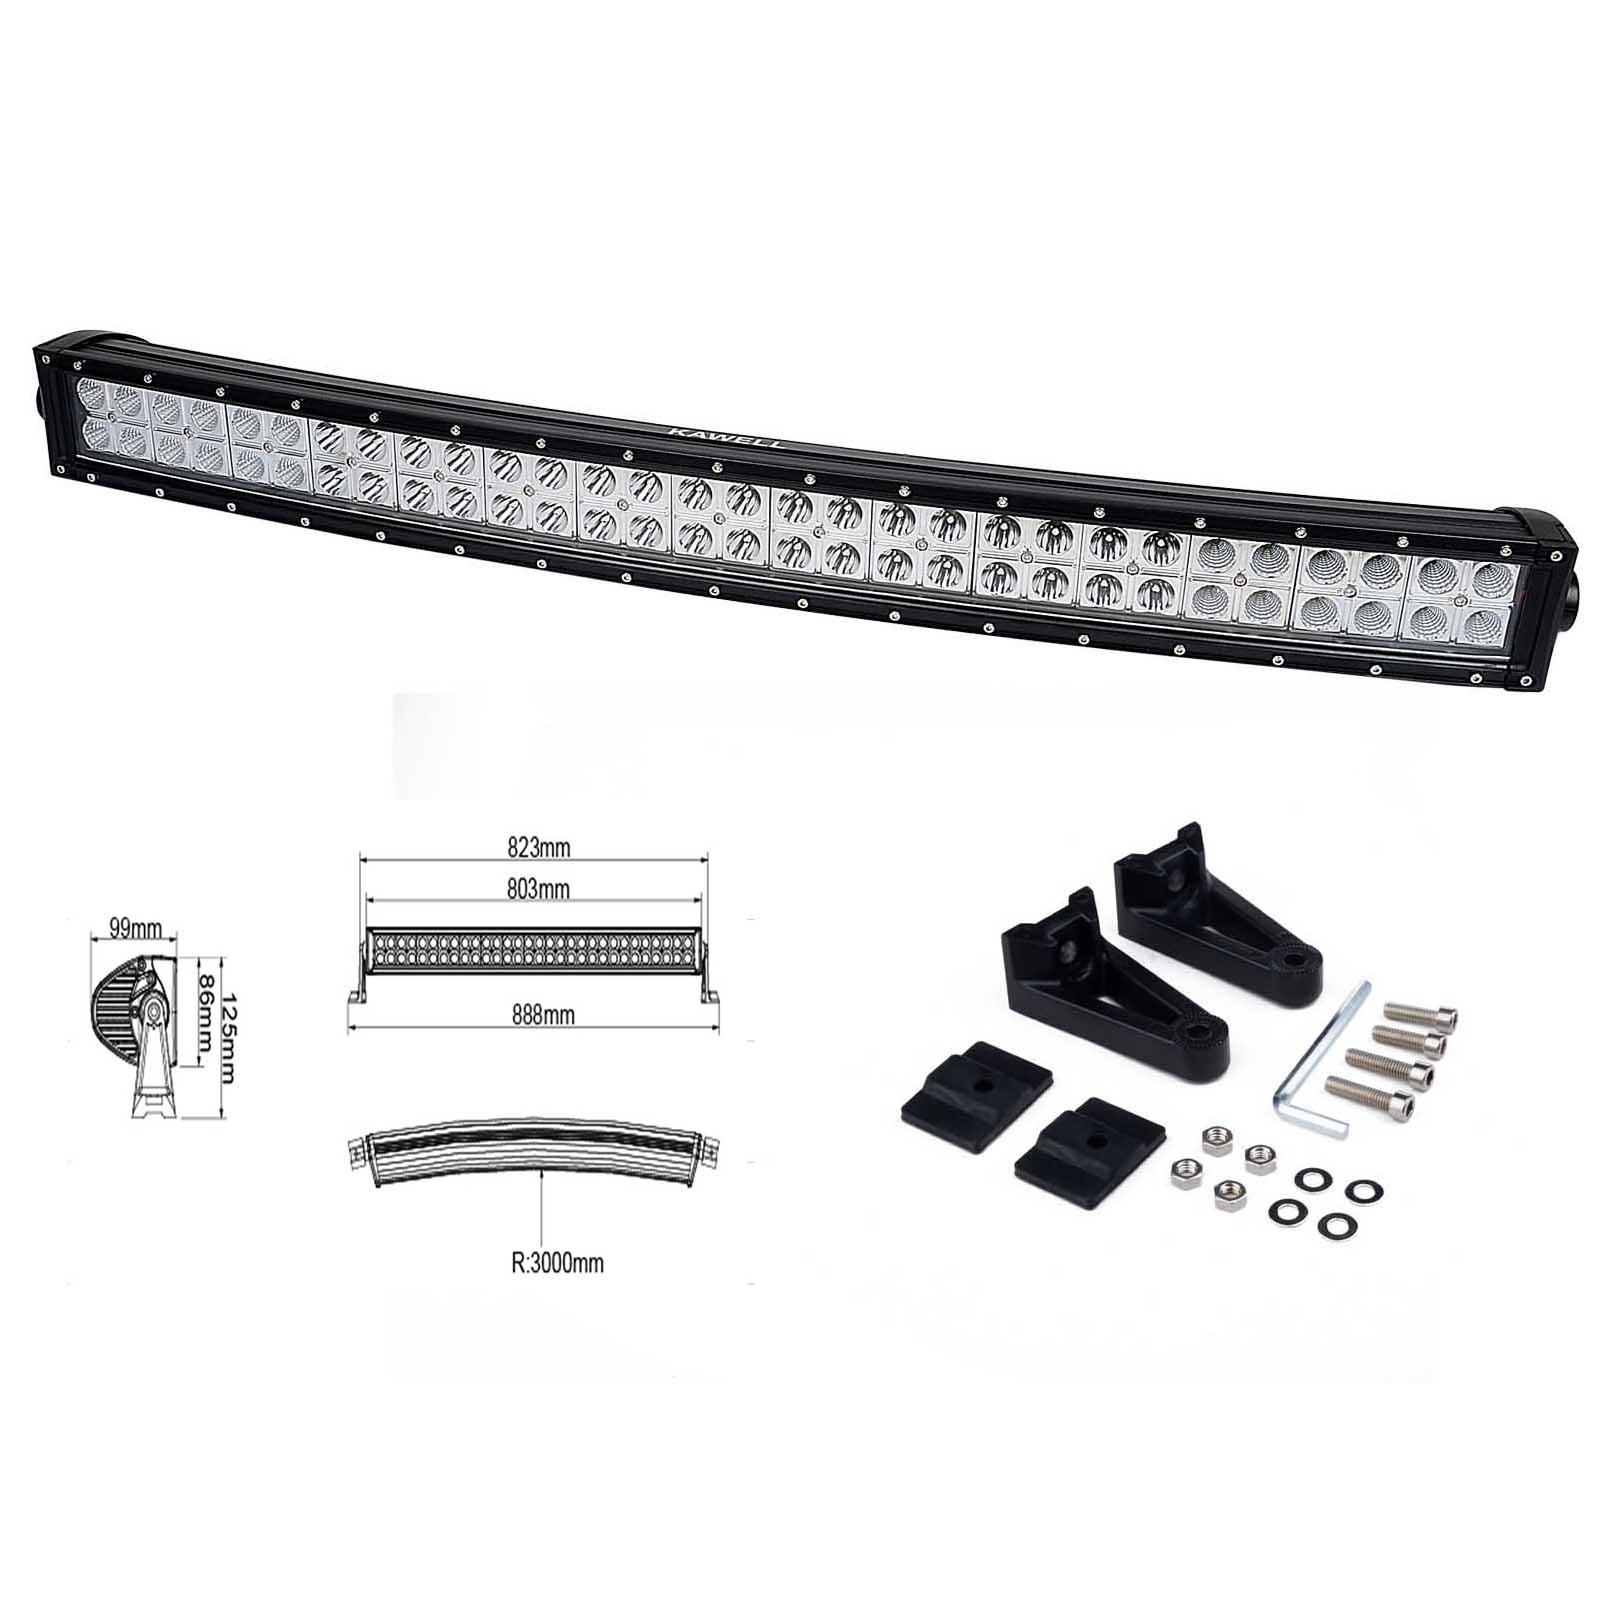 Kawell 32 180w Cree Curved Spot And Flood Combo Beam Led